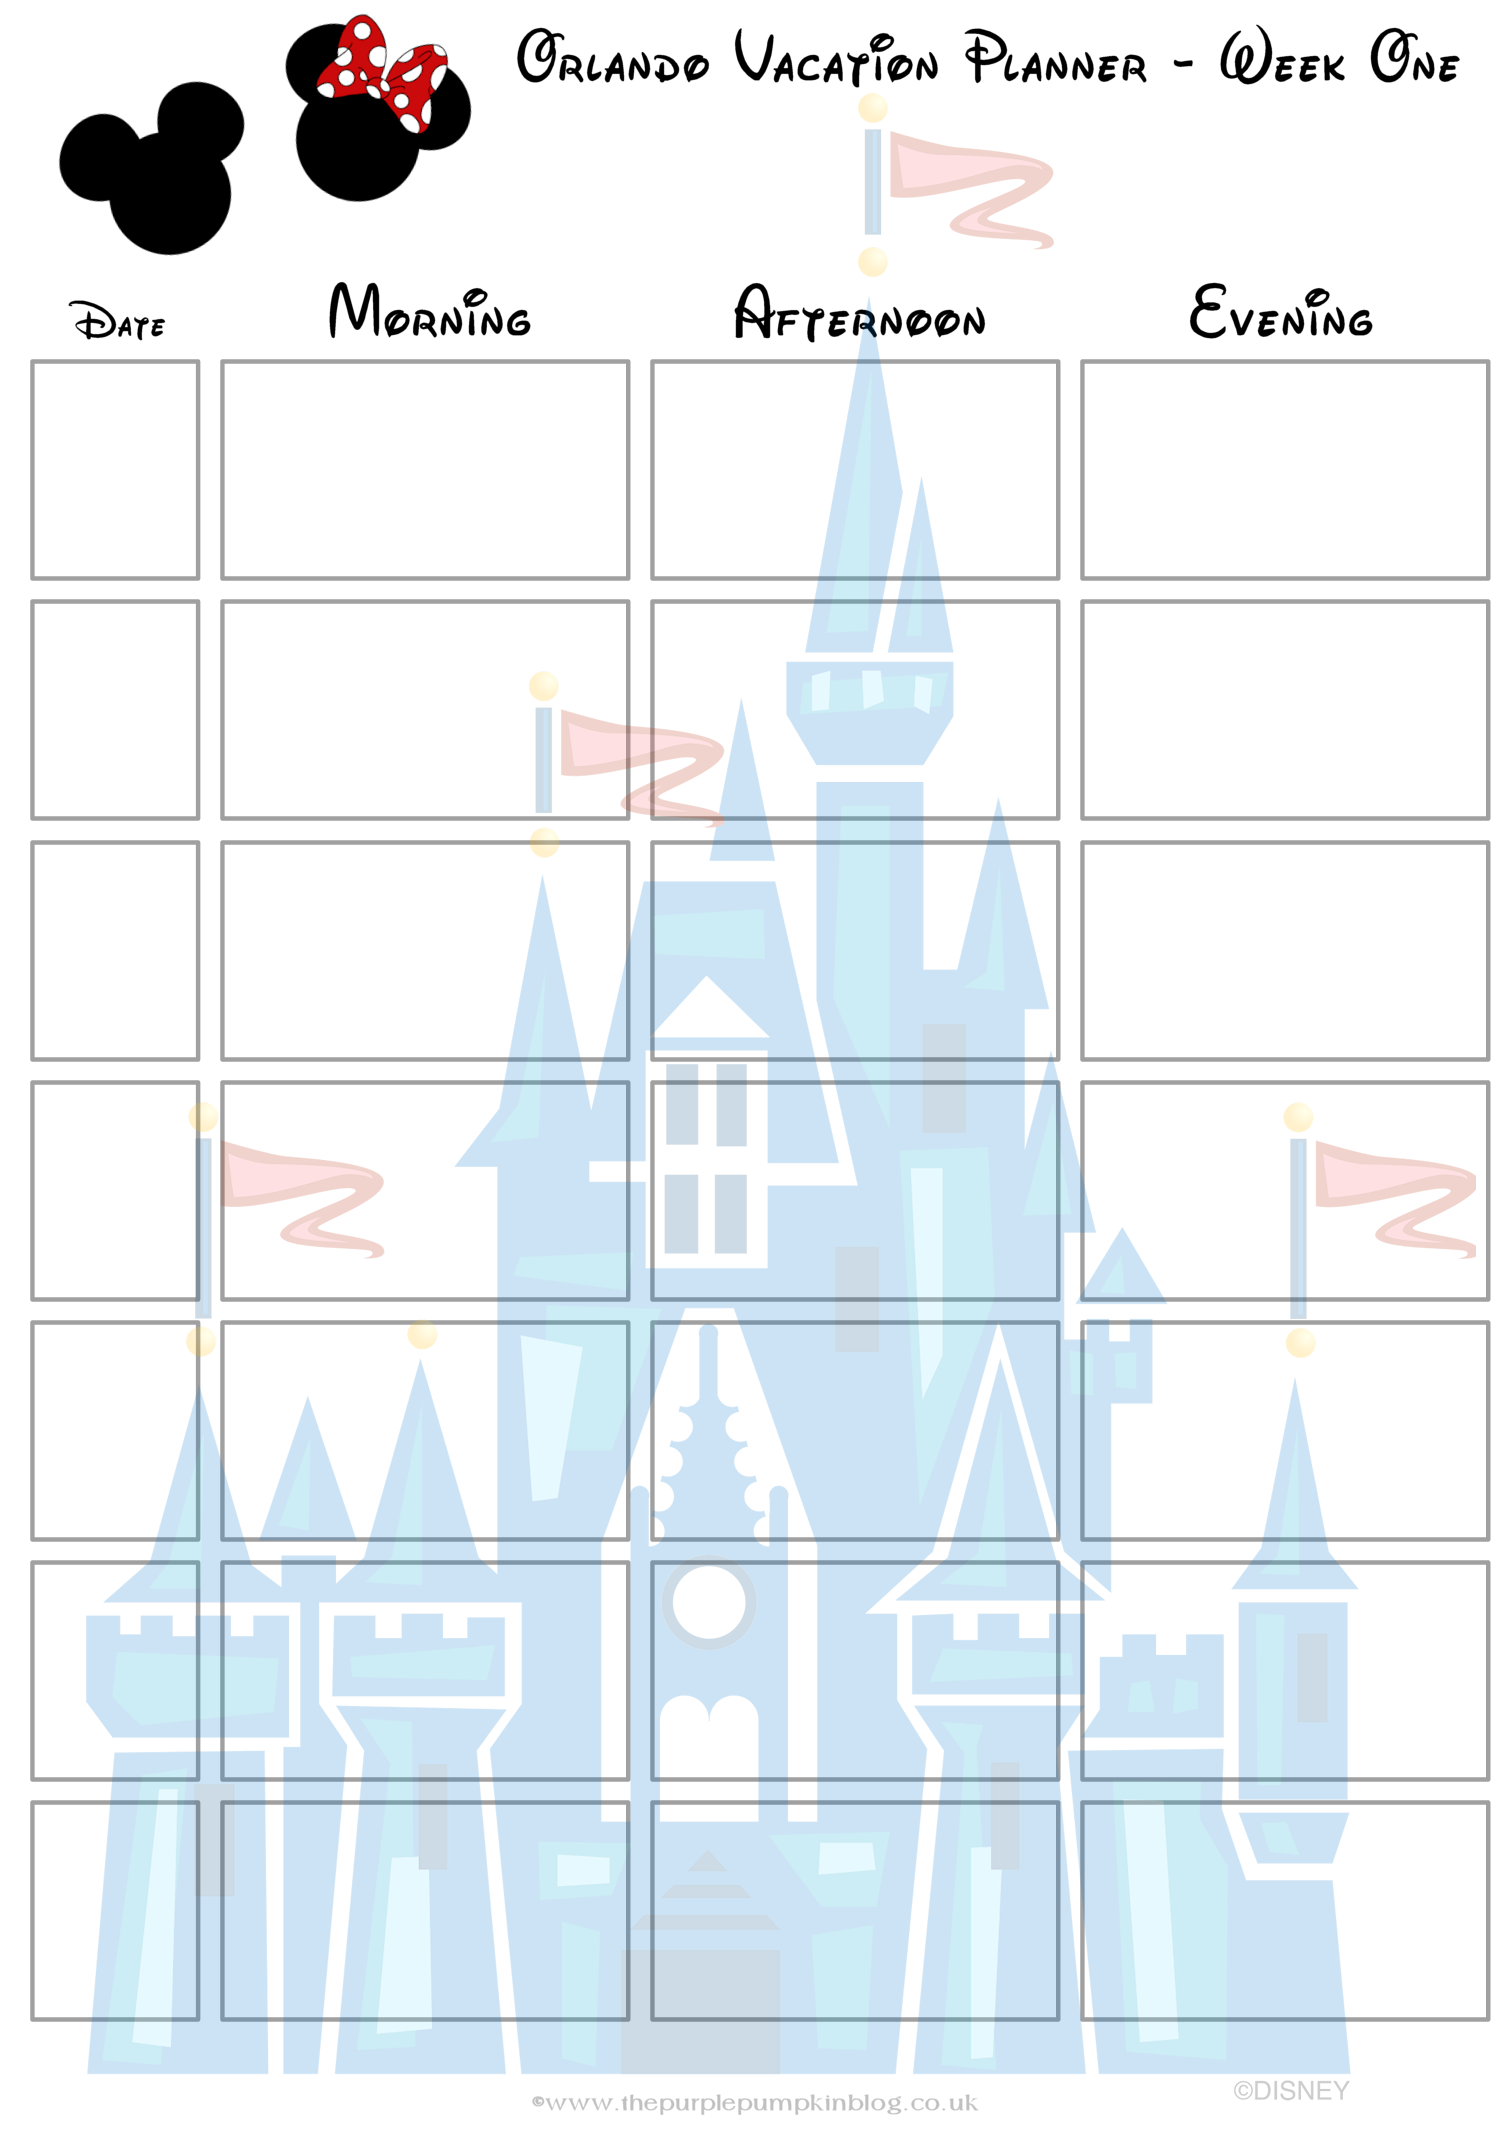 1000+ images about Disney Trip Planning on Pinterest | Trips, Trip